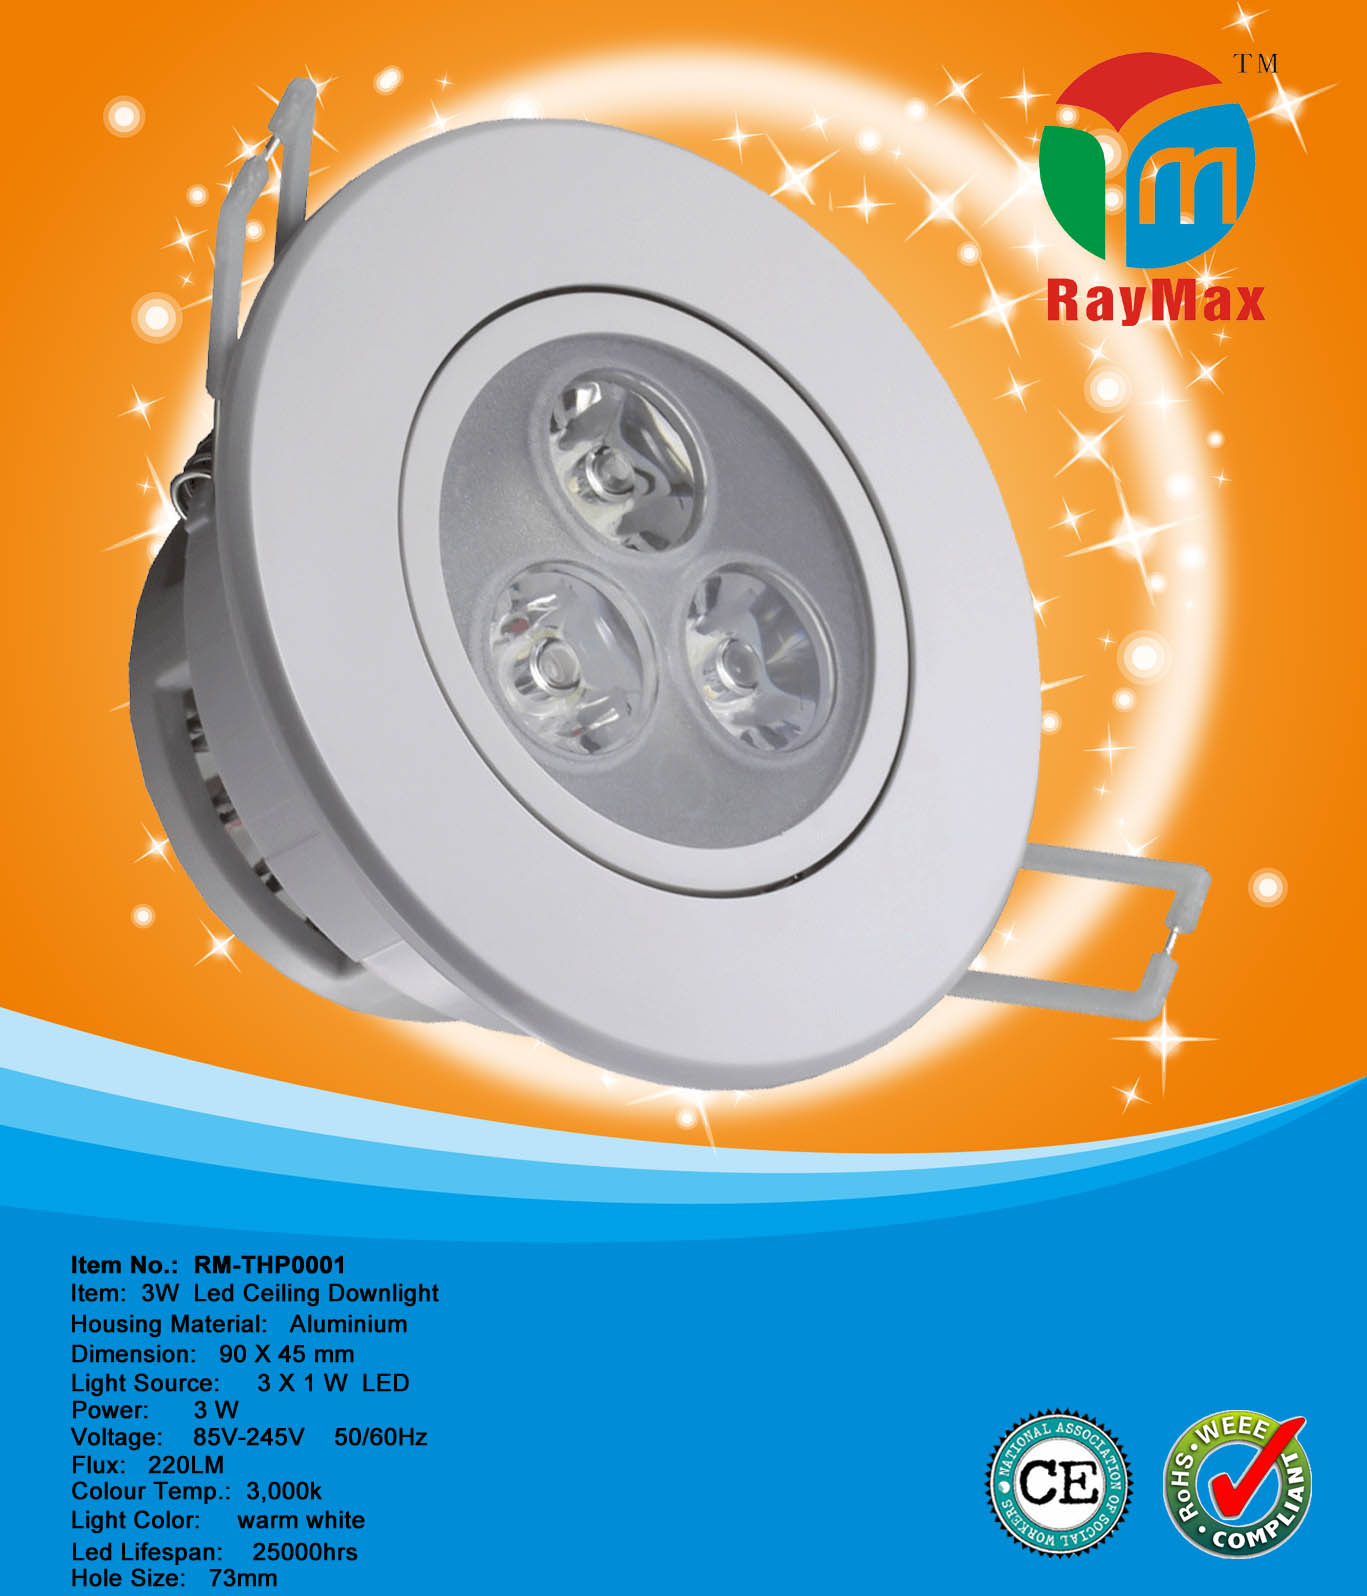 3W LED CEILING DOWNLIGHT